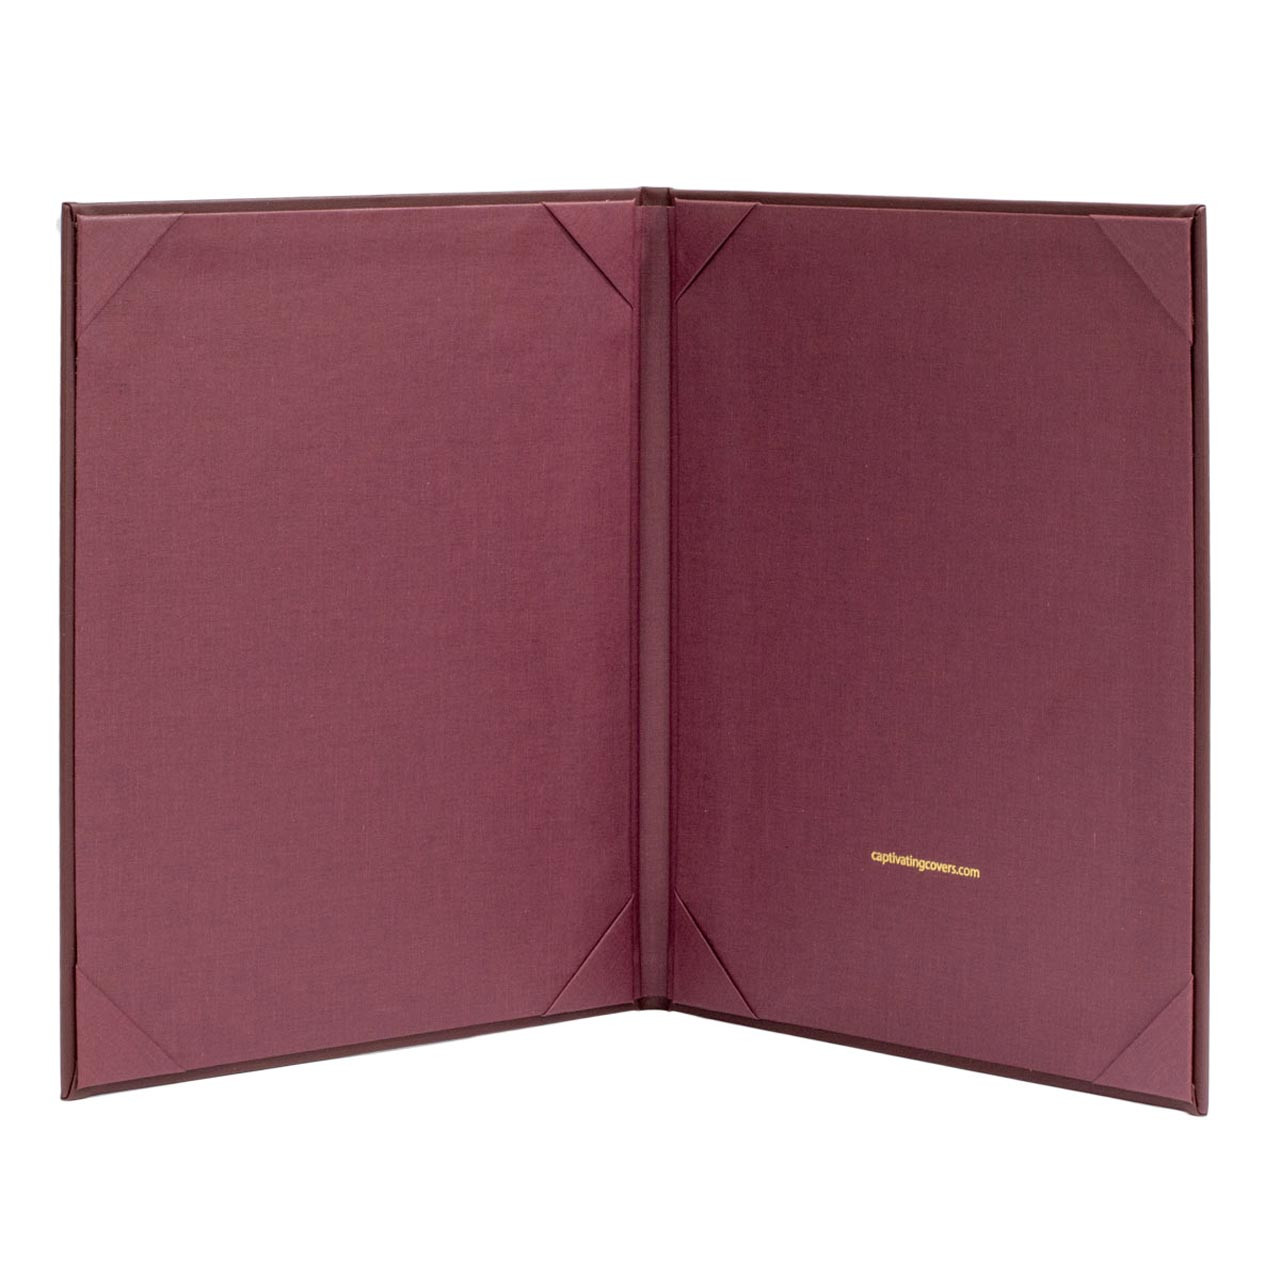 Maroon Menu Cover, 8.5 in. x 11 in. Insert, 2-Panels (inside view)